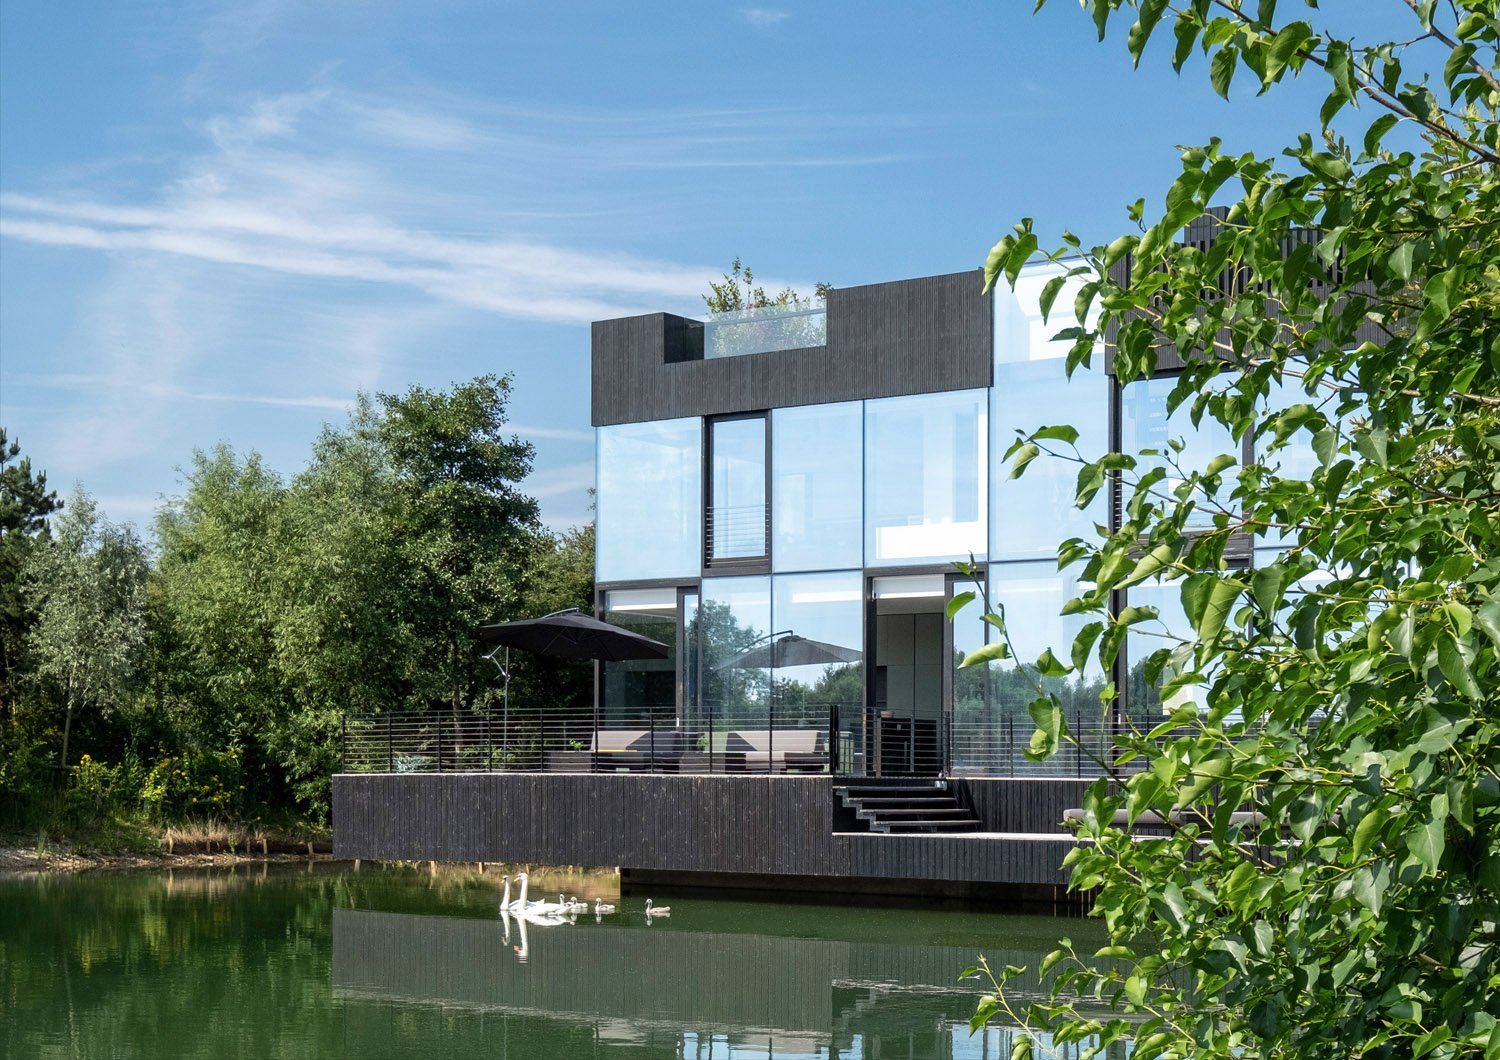 View from the lake - house in located in the lakes by Yoo. Blue Sky Images